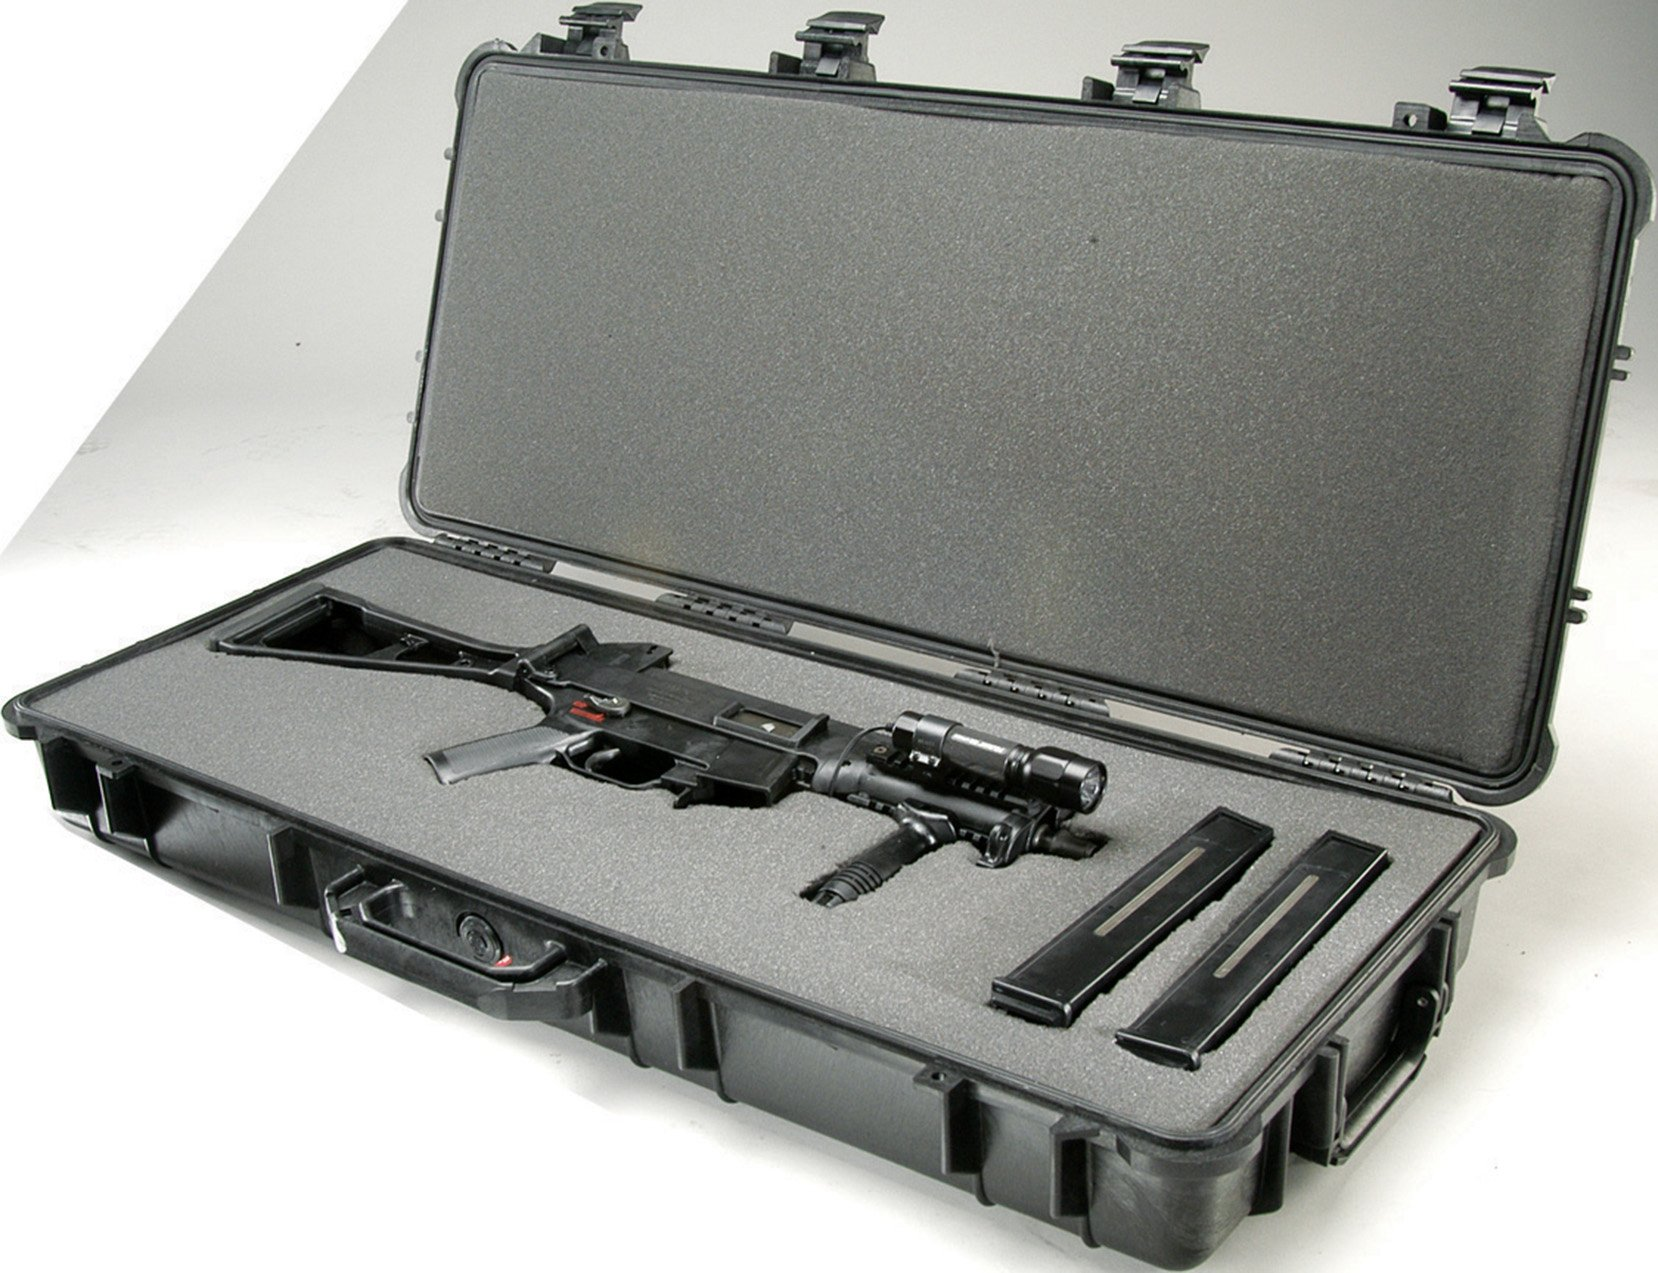 Pelican 1700 Rifle Case With Foam (Black) by Pelican (Image #3)